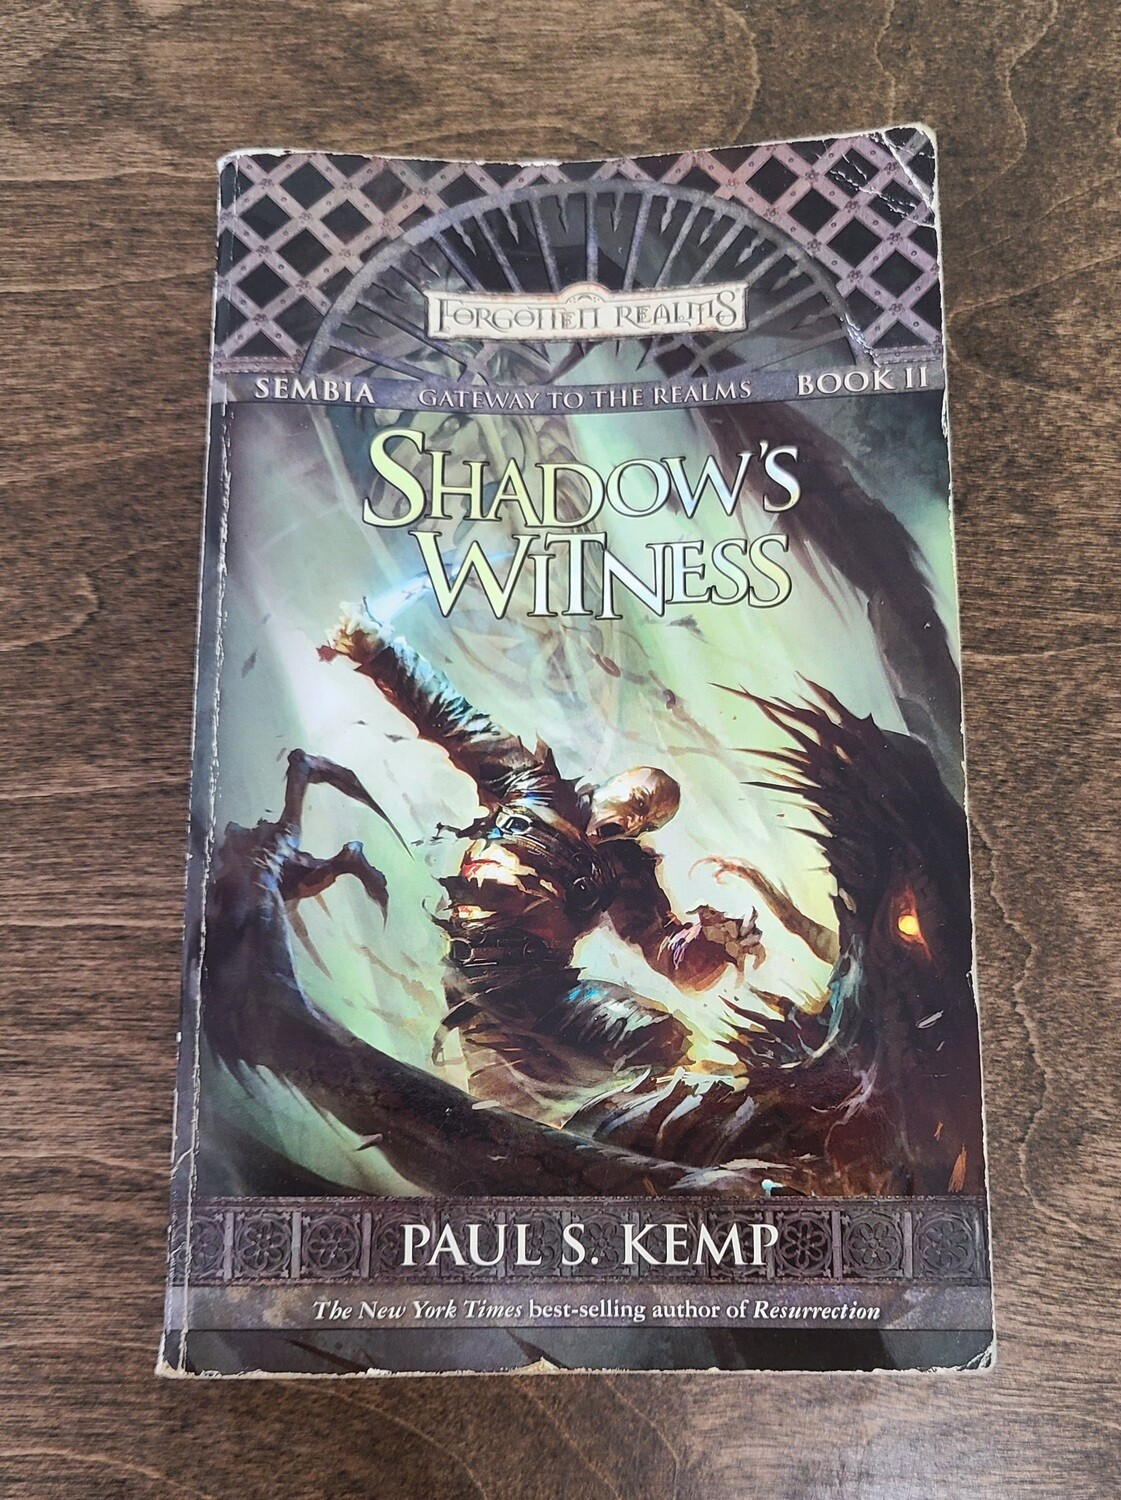 Gateway to the Realms: Shadow's Witness by Paul S. Kemp